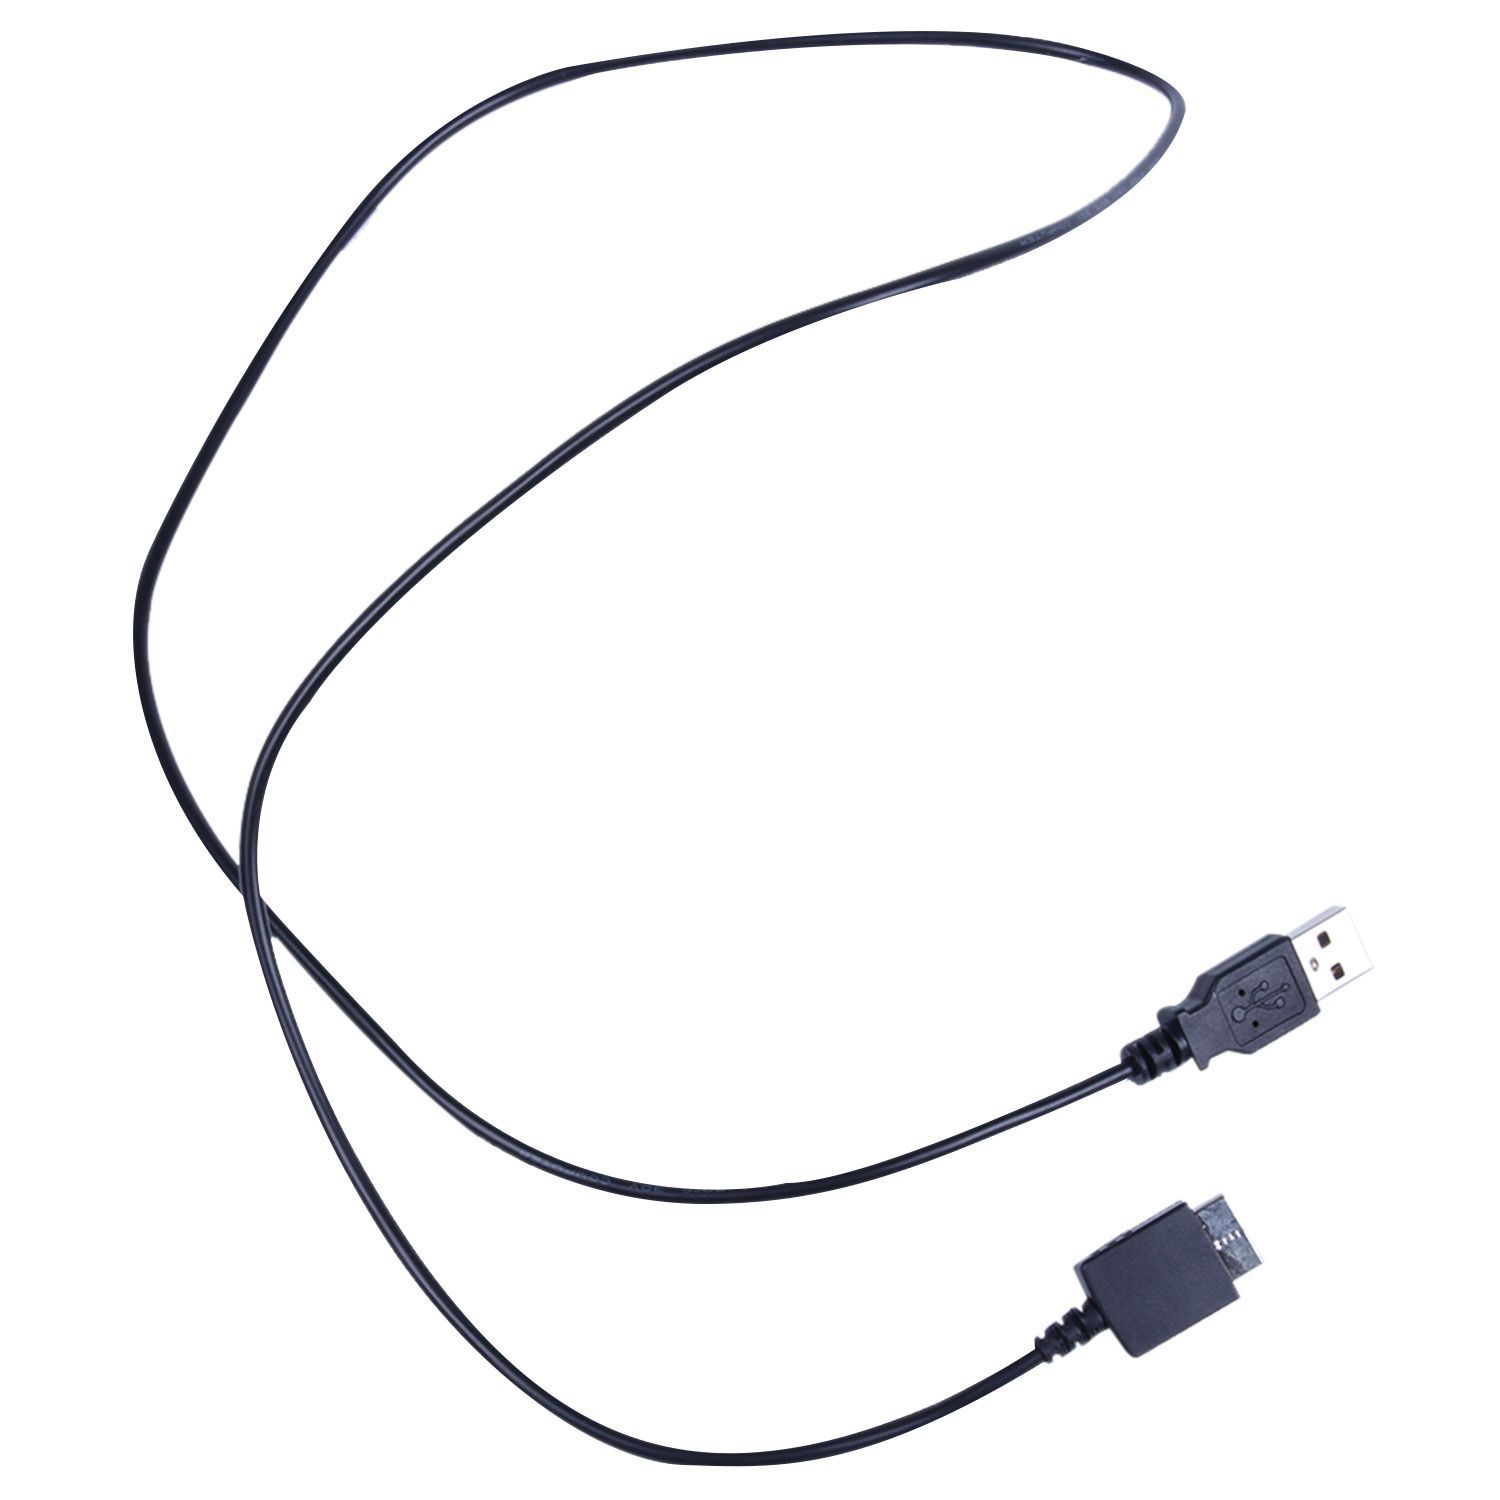 HFES New USB data charging cable cord Sony Walkman E052 A844 A845 MP3 MP4 player black